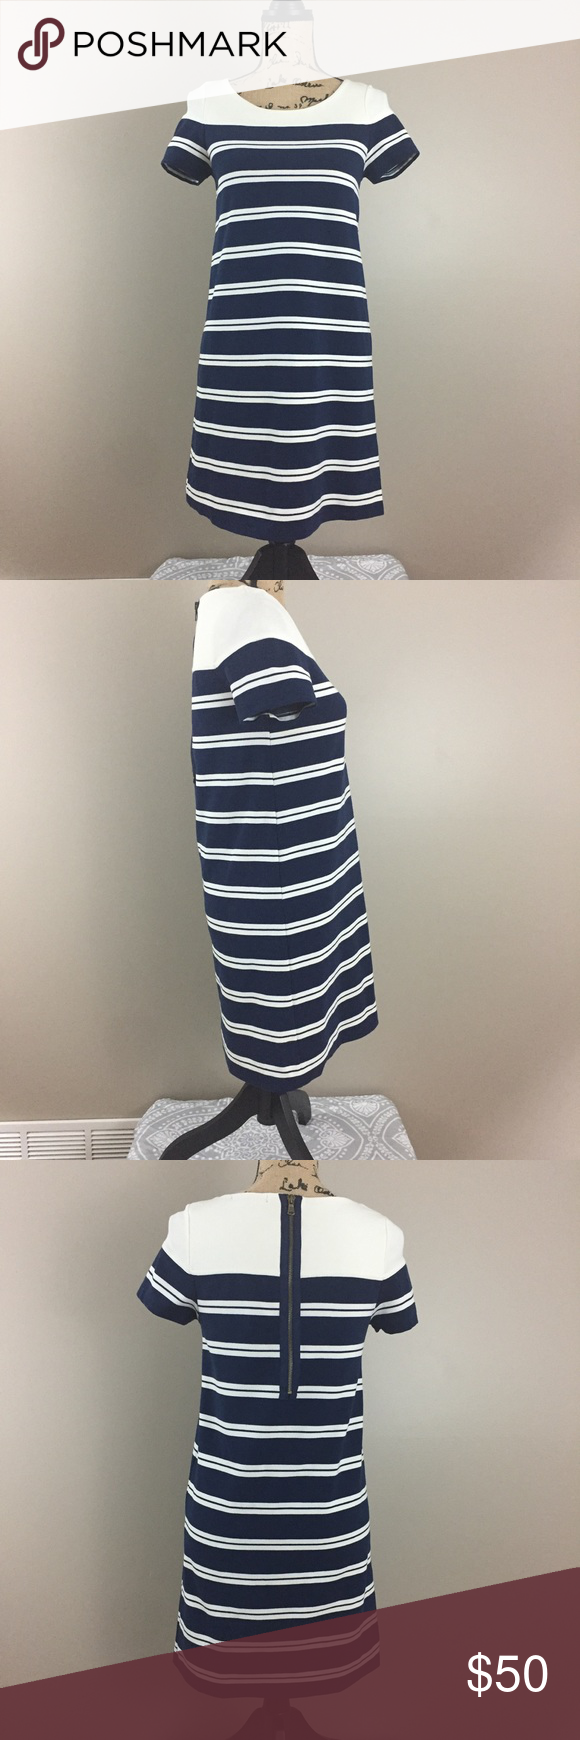 df912999e41 Zara Basic Nautical Stripe Dress